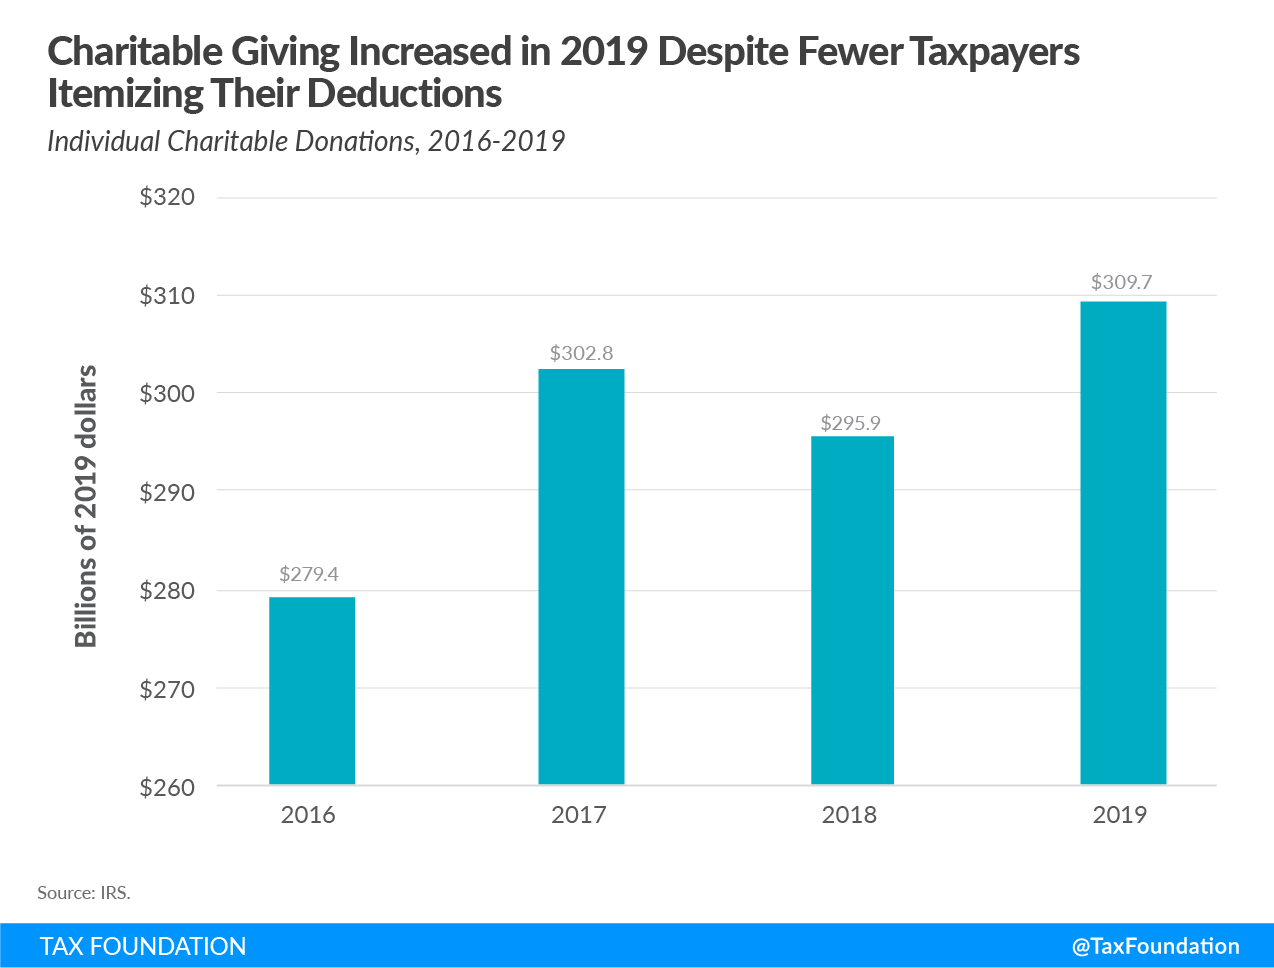 tax cuts and jobs act charitable giving, tax cuts and jobs act charitable deduction, tax cuts and jobs act affect charitable giving, charitable contributions, charitable donations